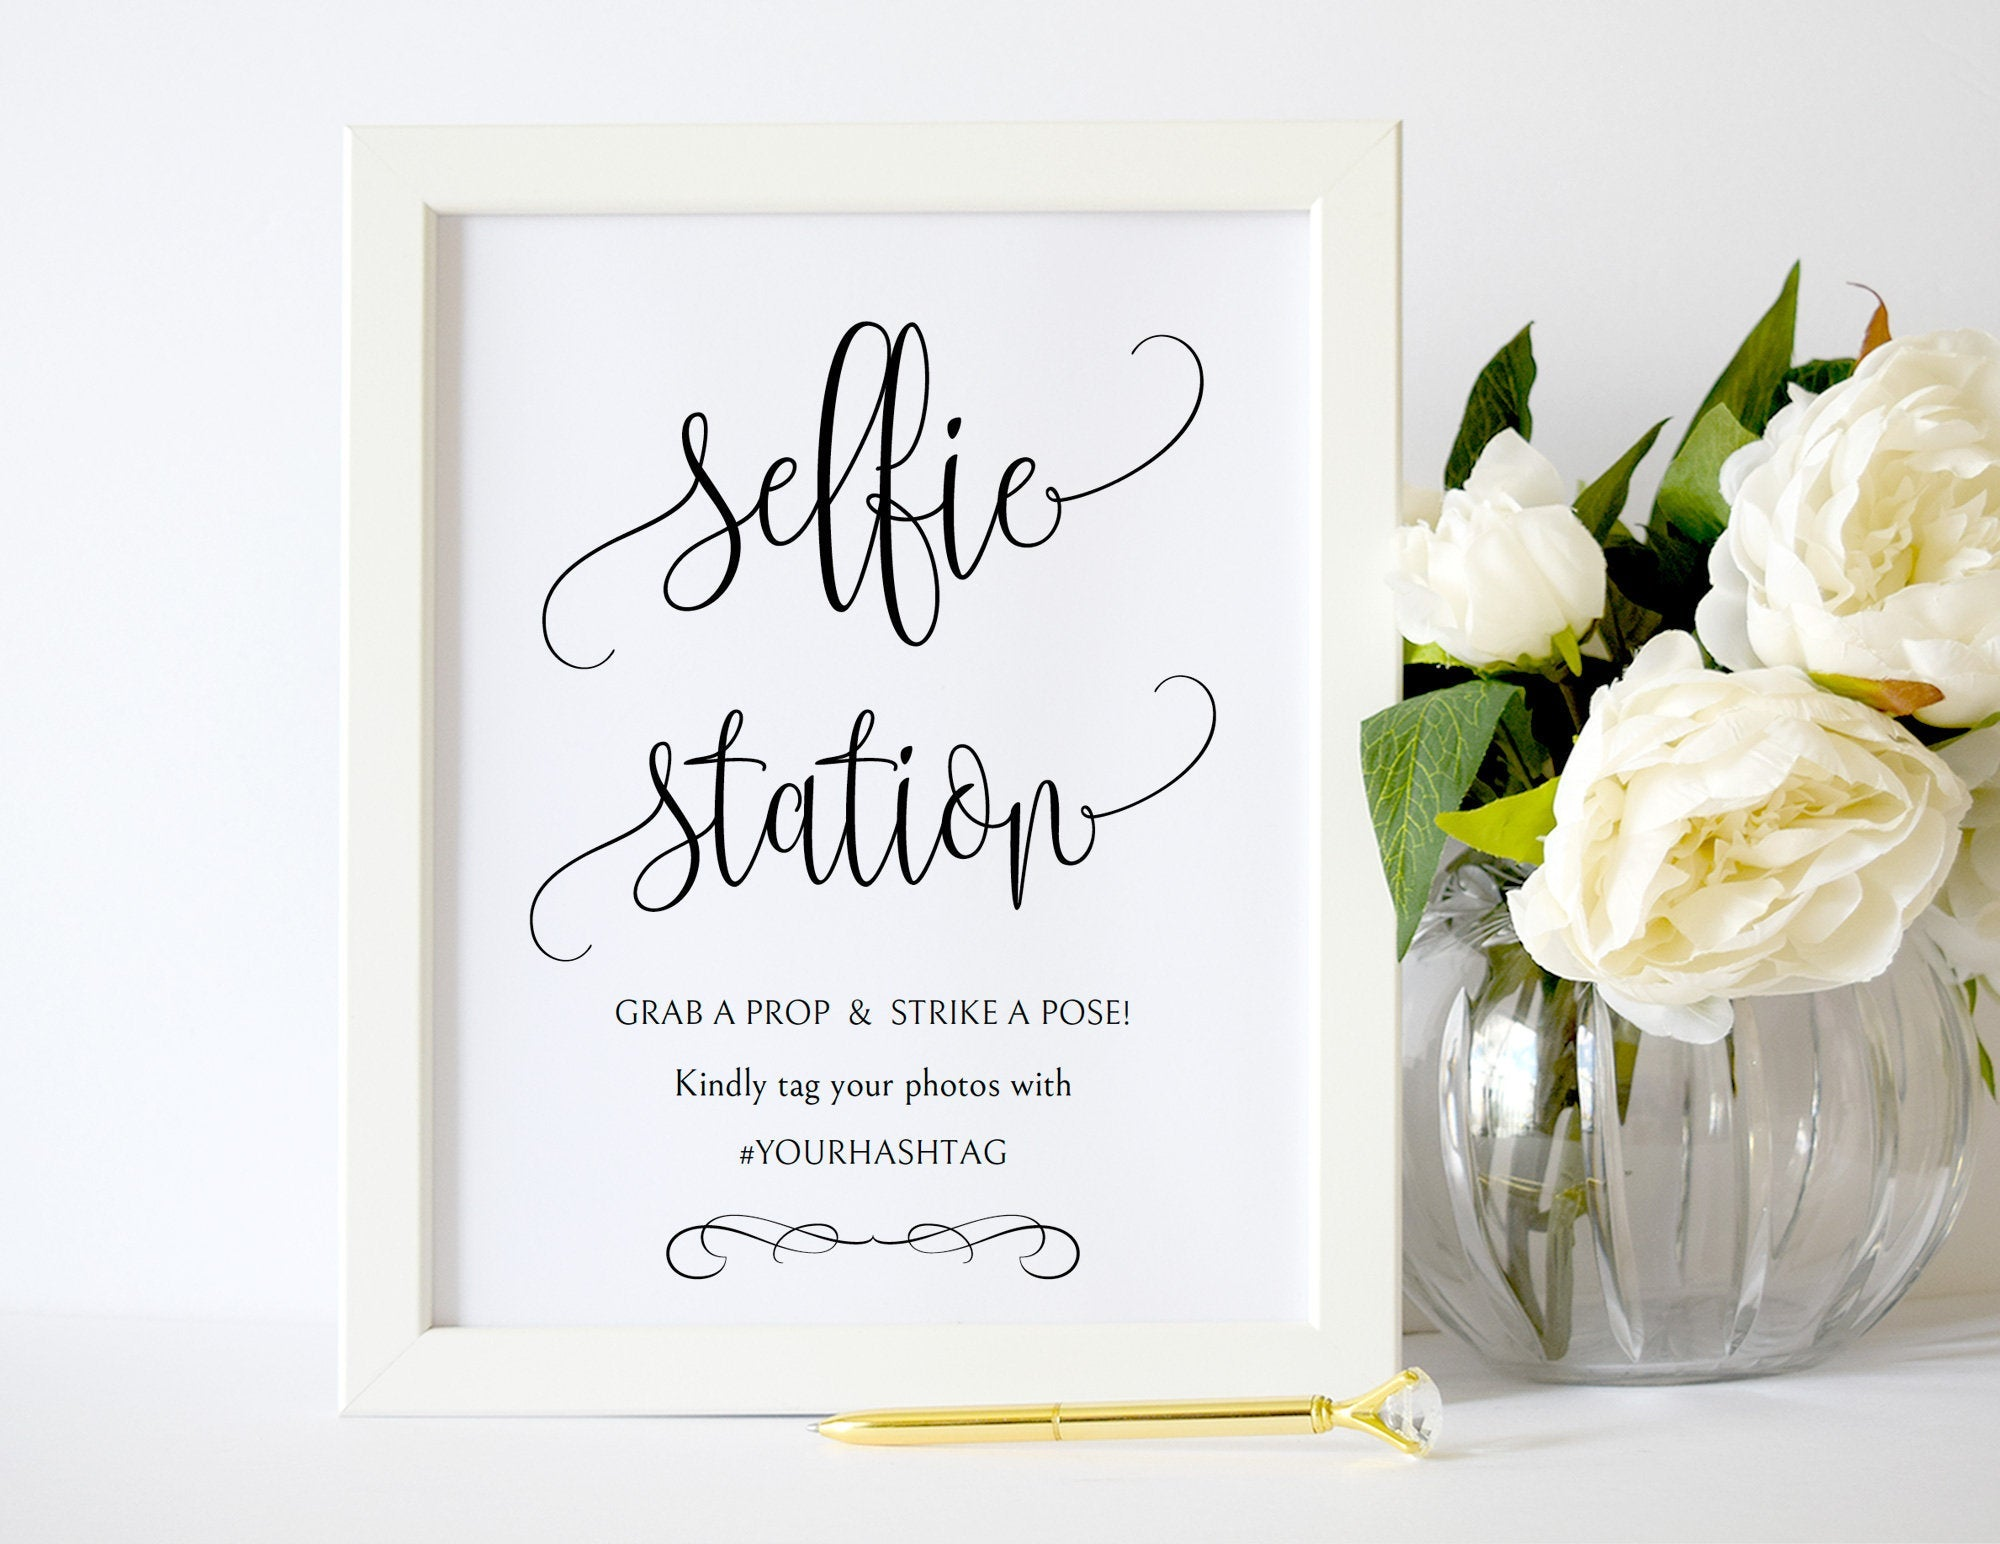 Selfie Station Printable Wedding Sign